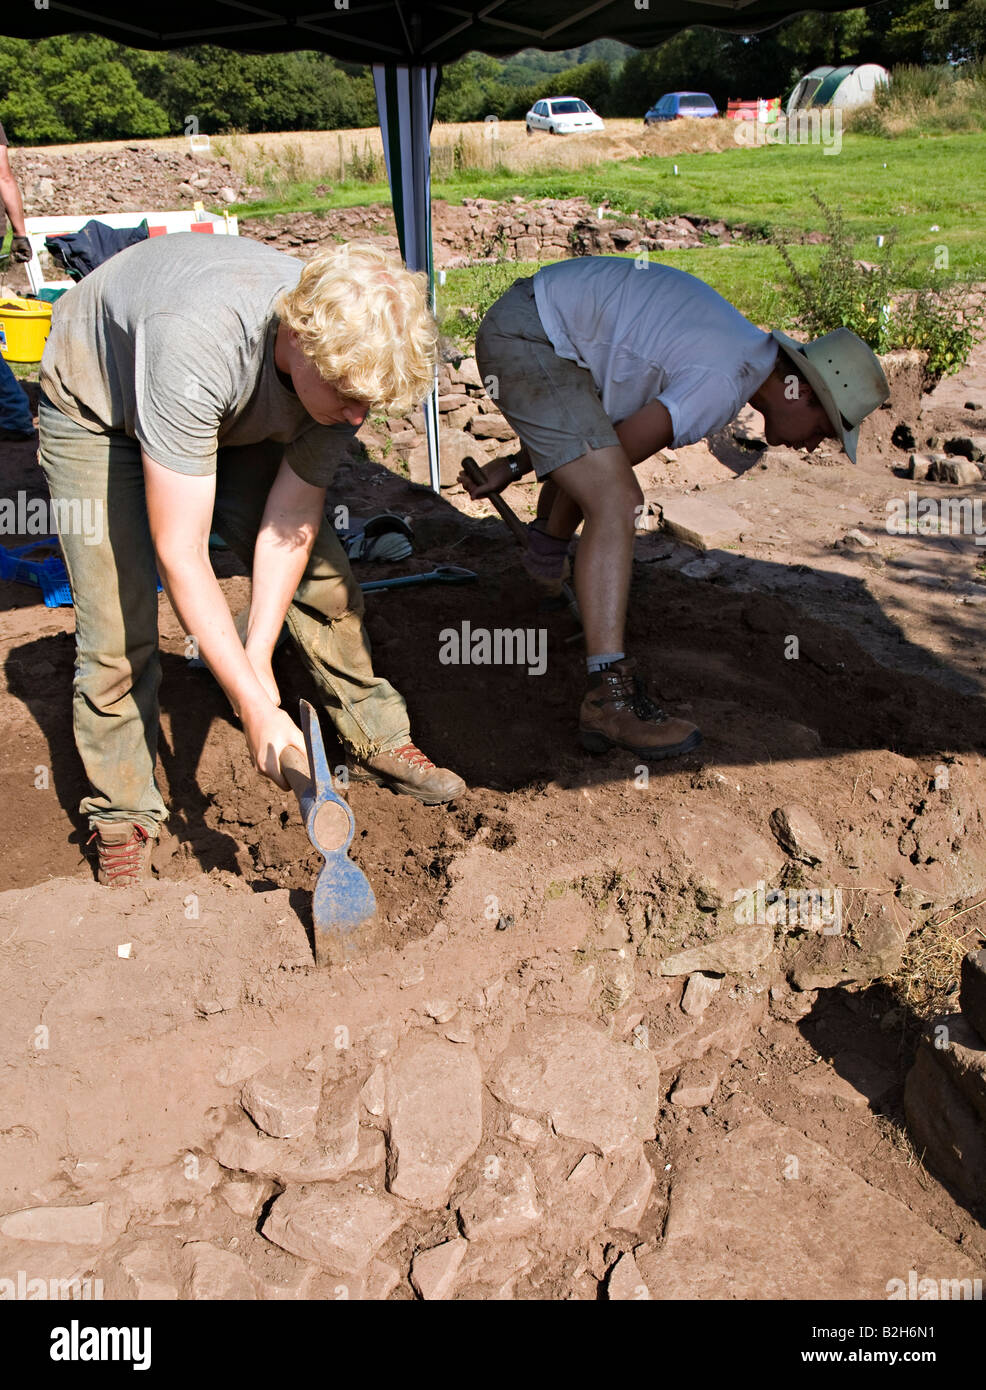 Archaeological dig at the Lost City of Trellech project Wales UK - Stock Image